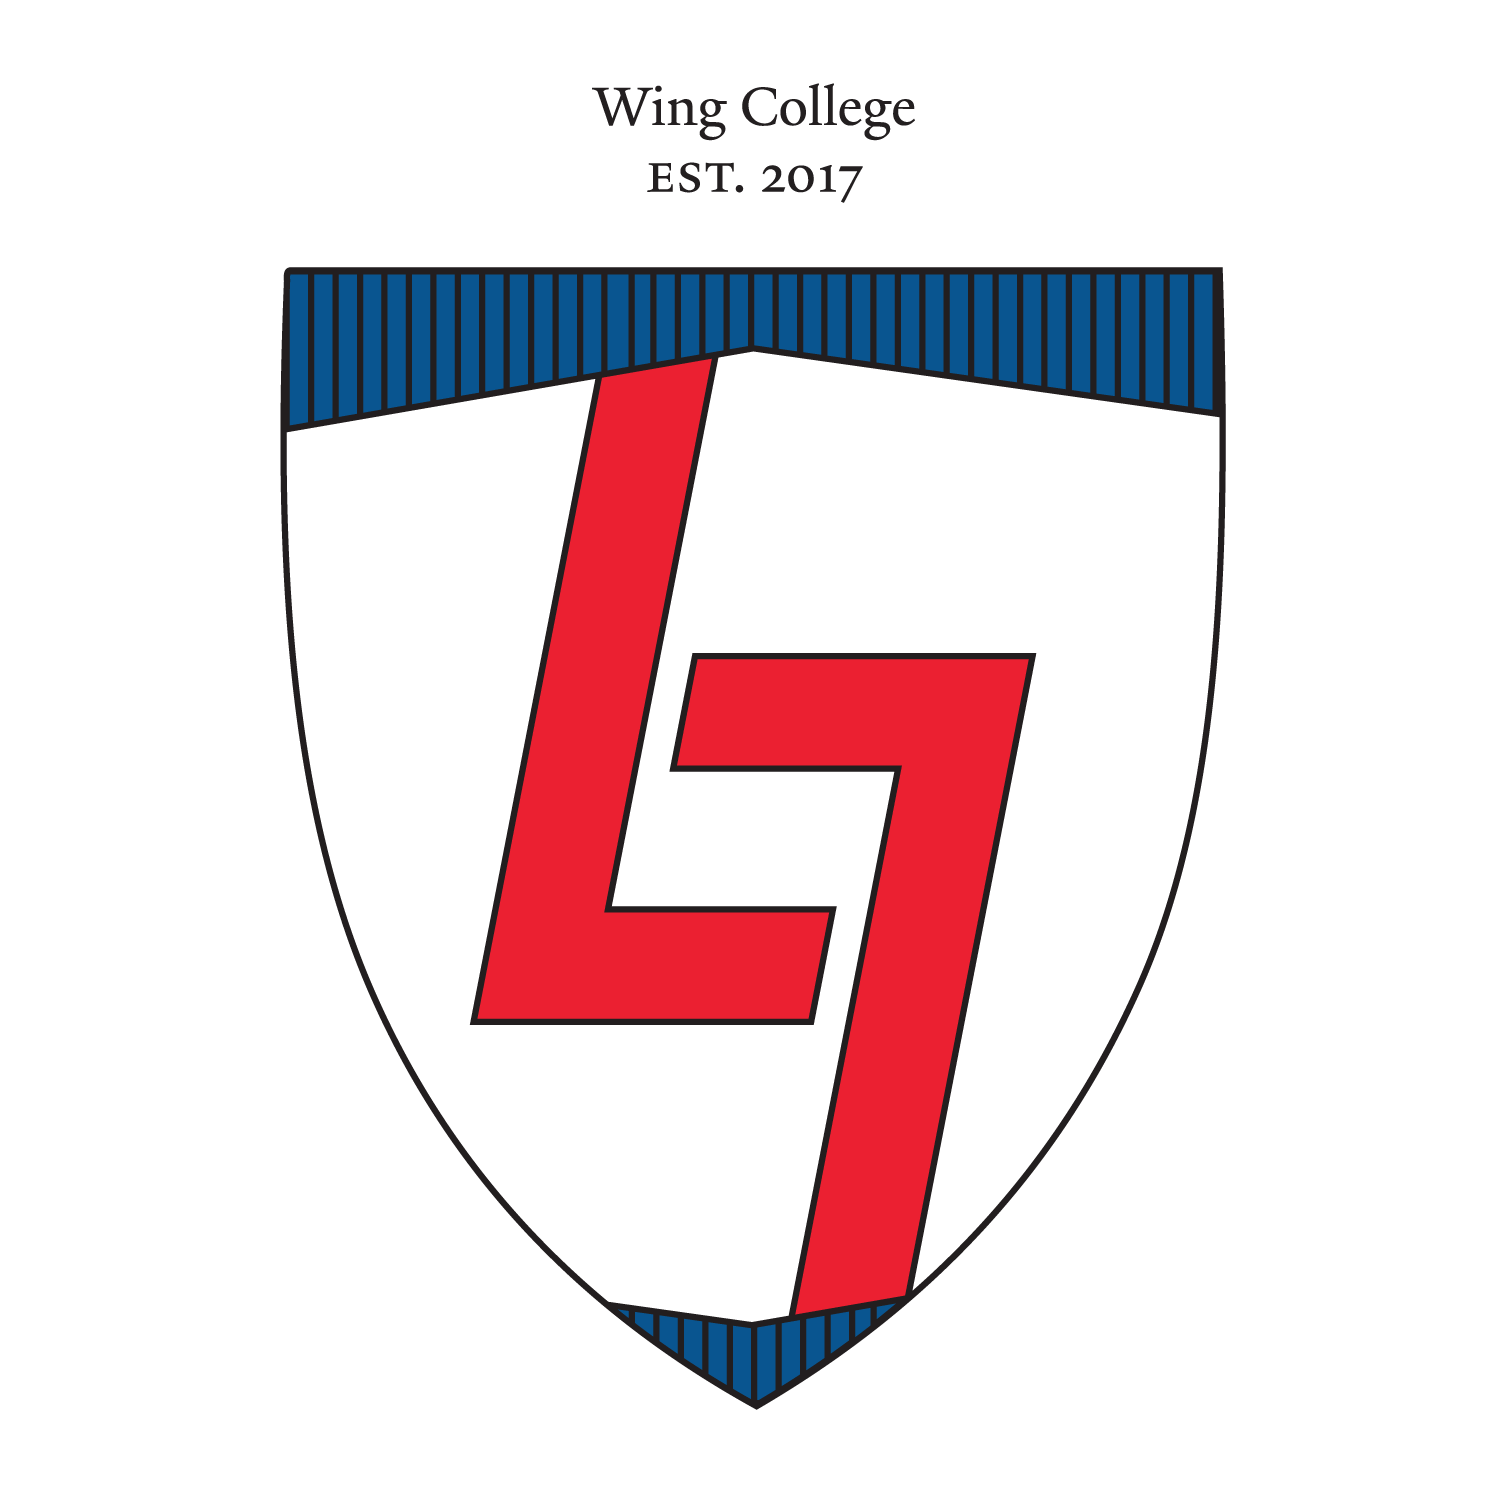 Shield proposals for new residential college at Yale University